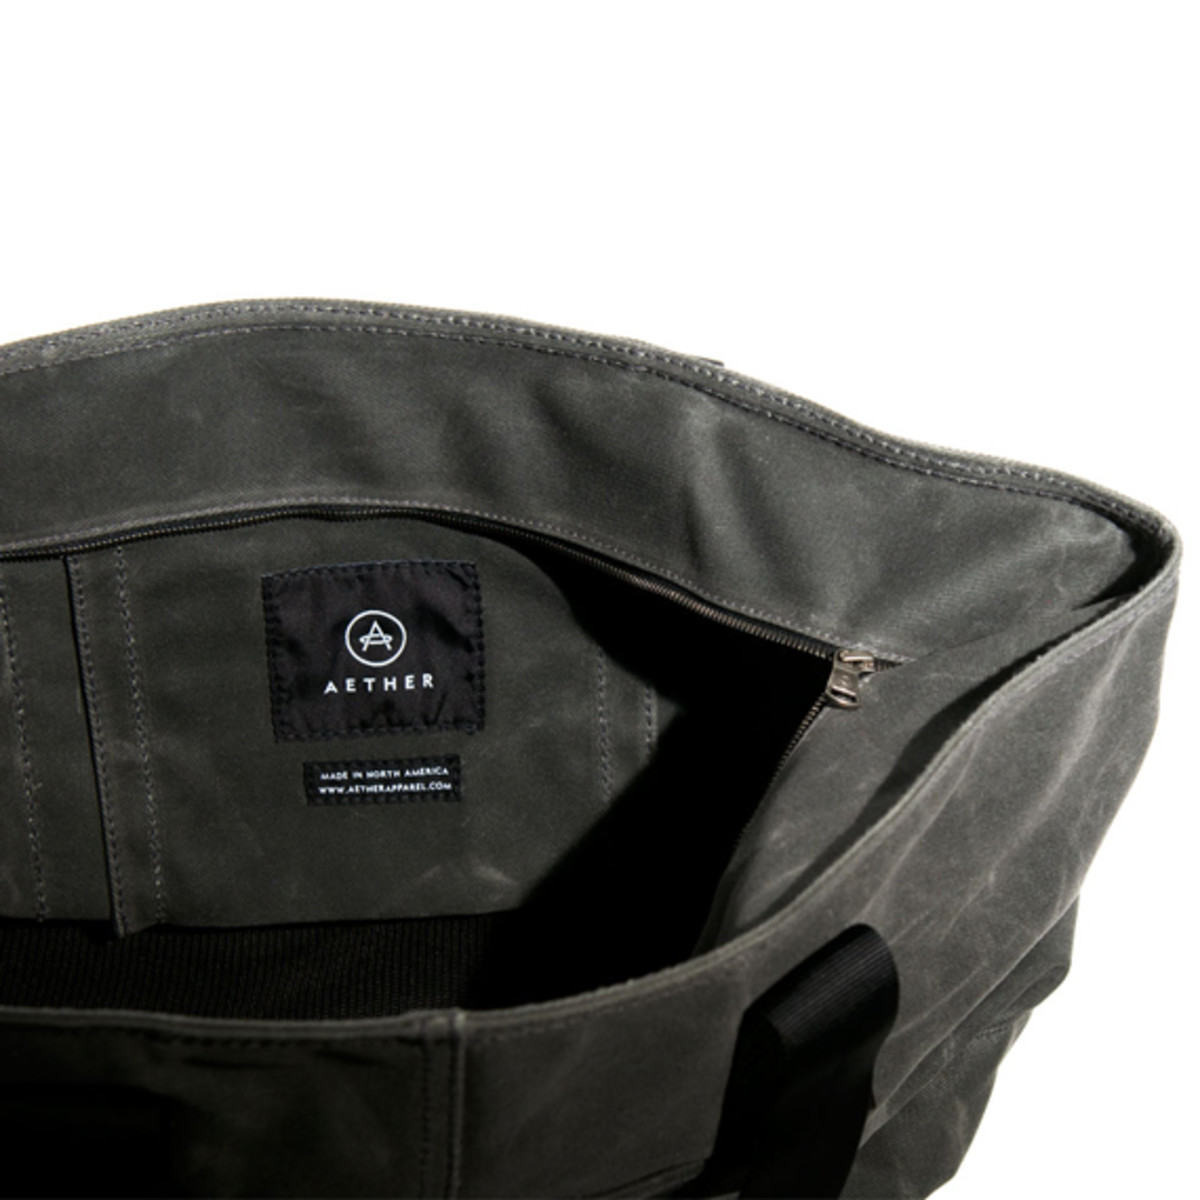 aether-canvas-utility-tote-bag-08